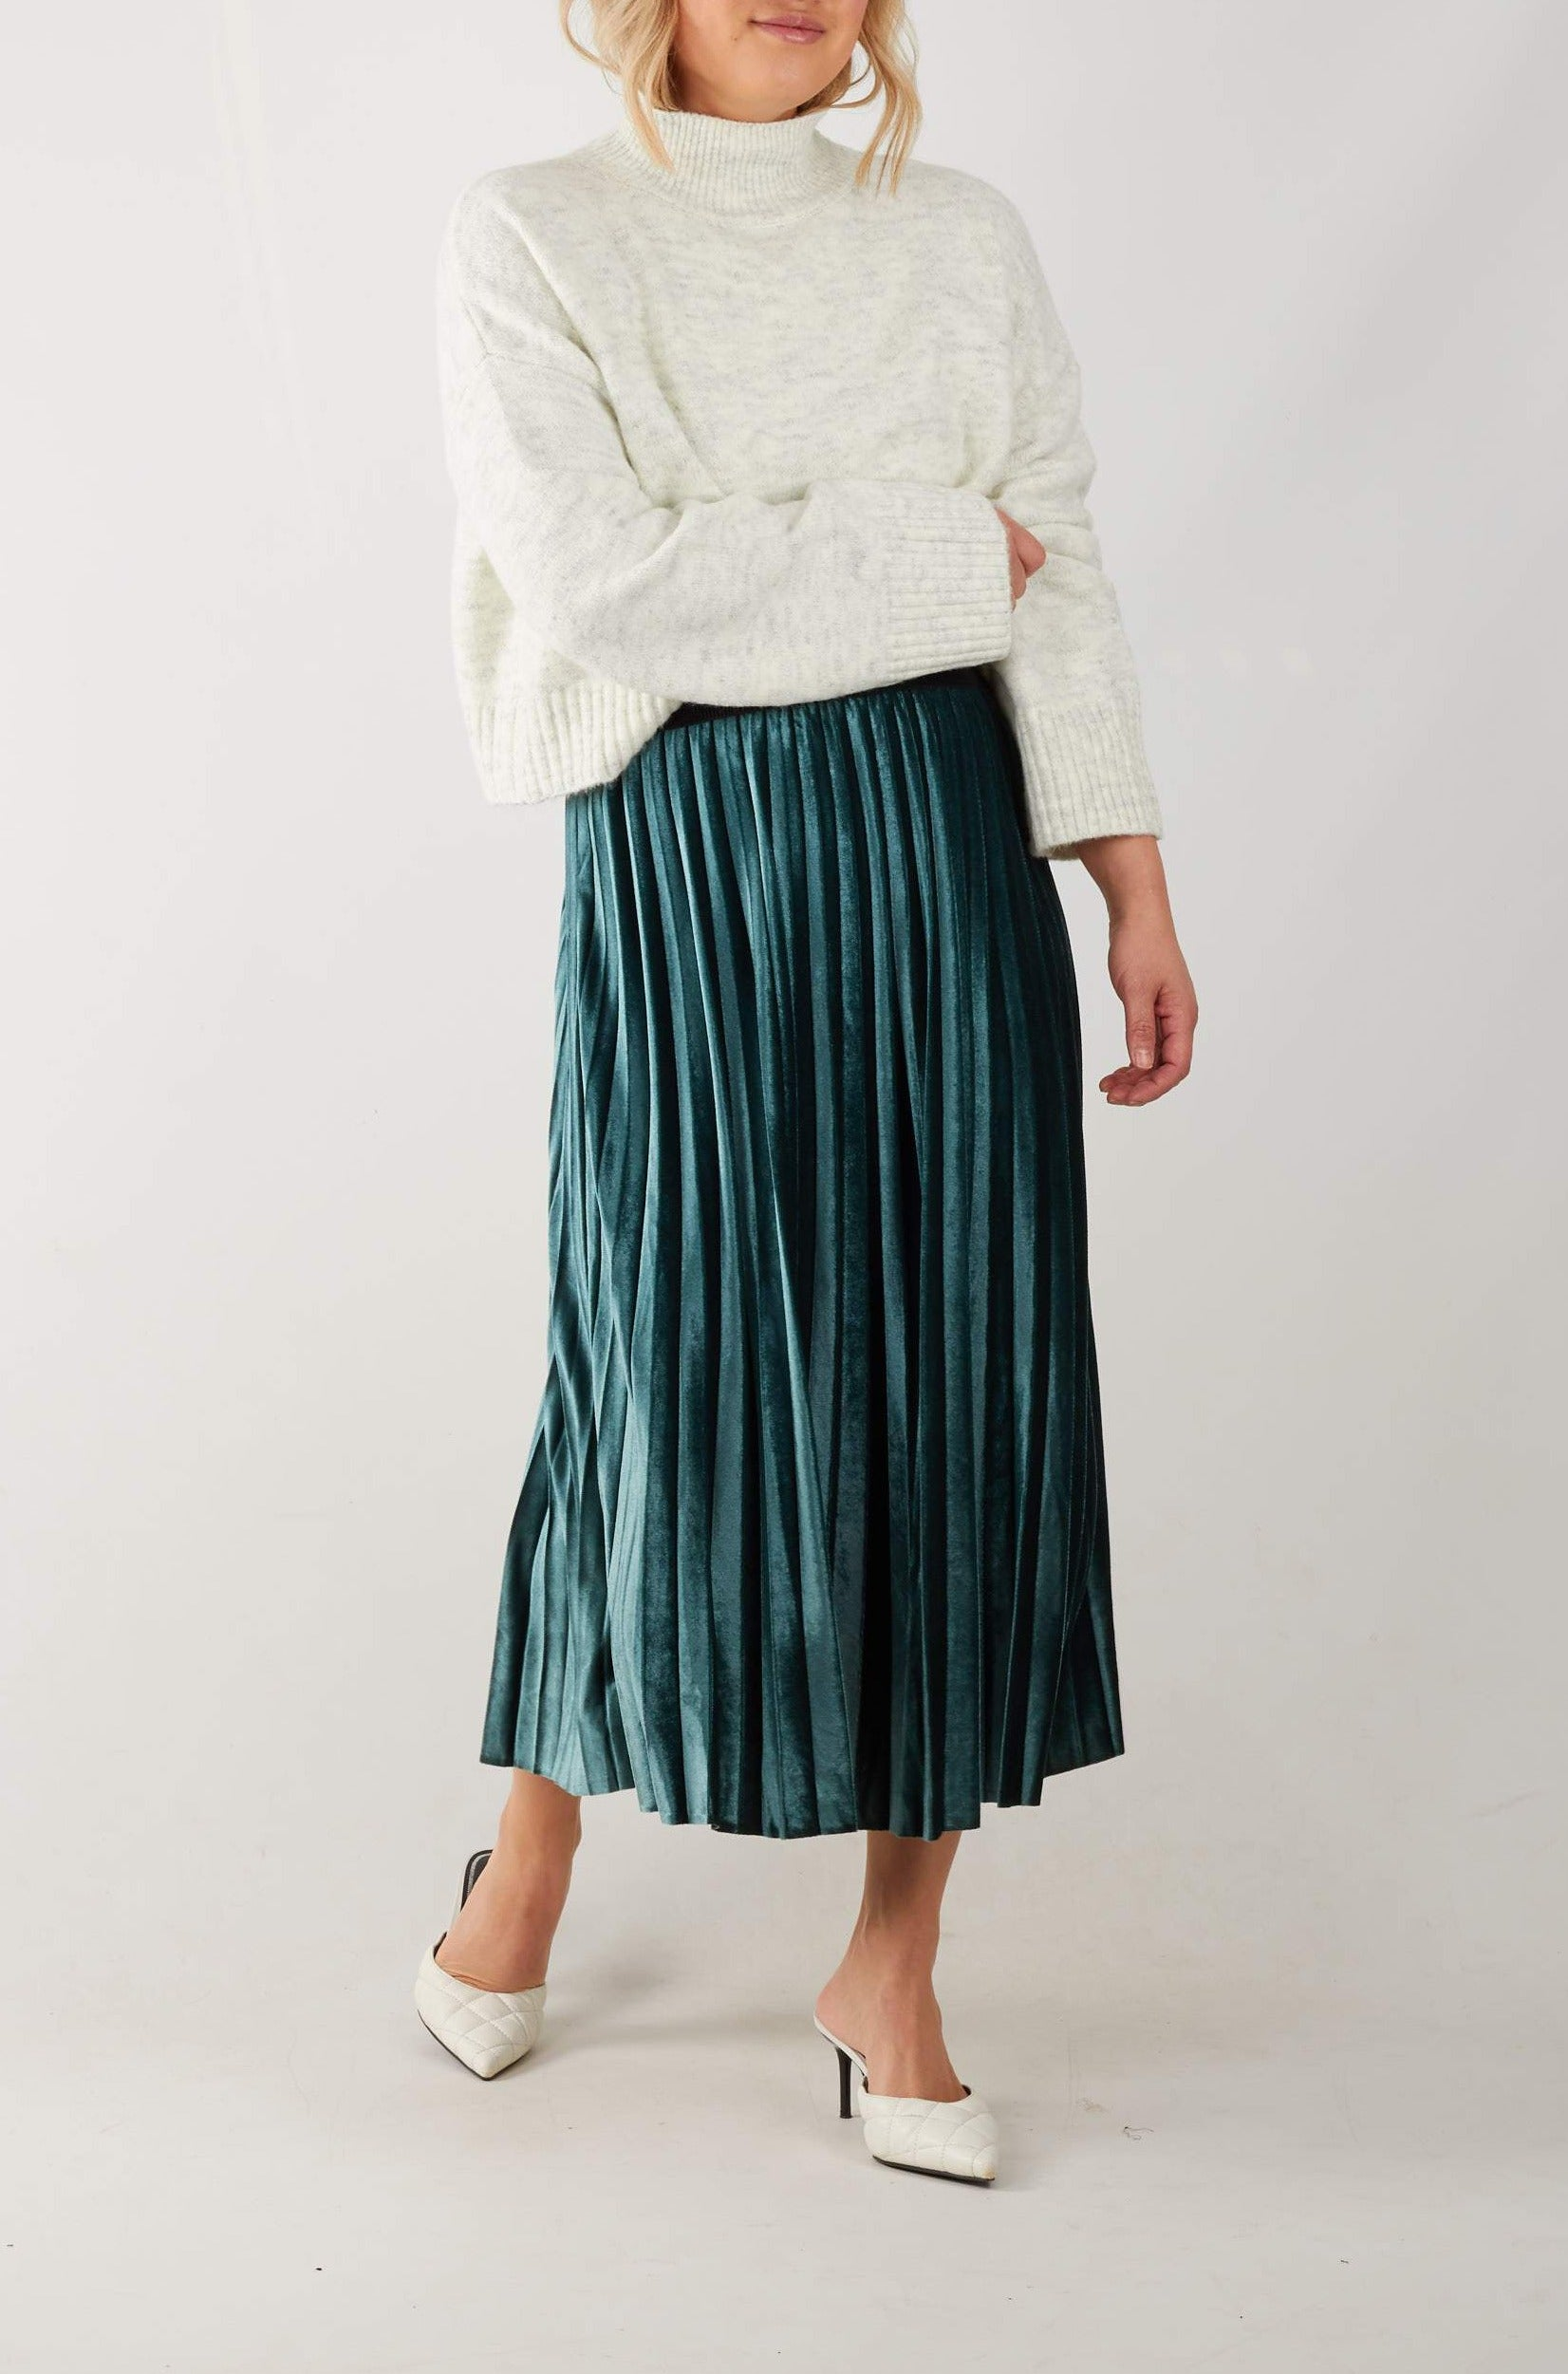 Deep green velvet pleated midi skirt with contrast black elasticised waistband. Also available in dusty pink.